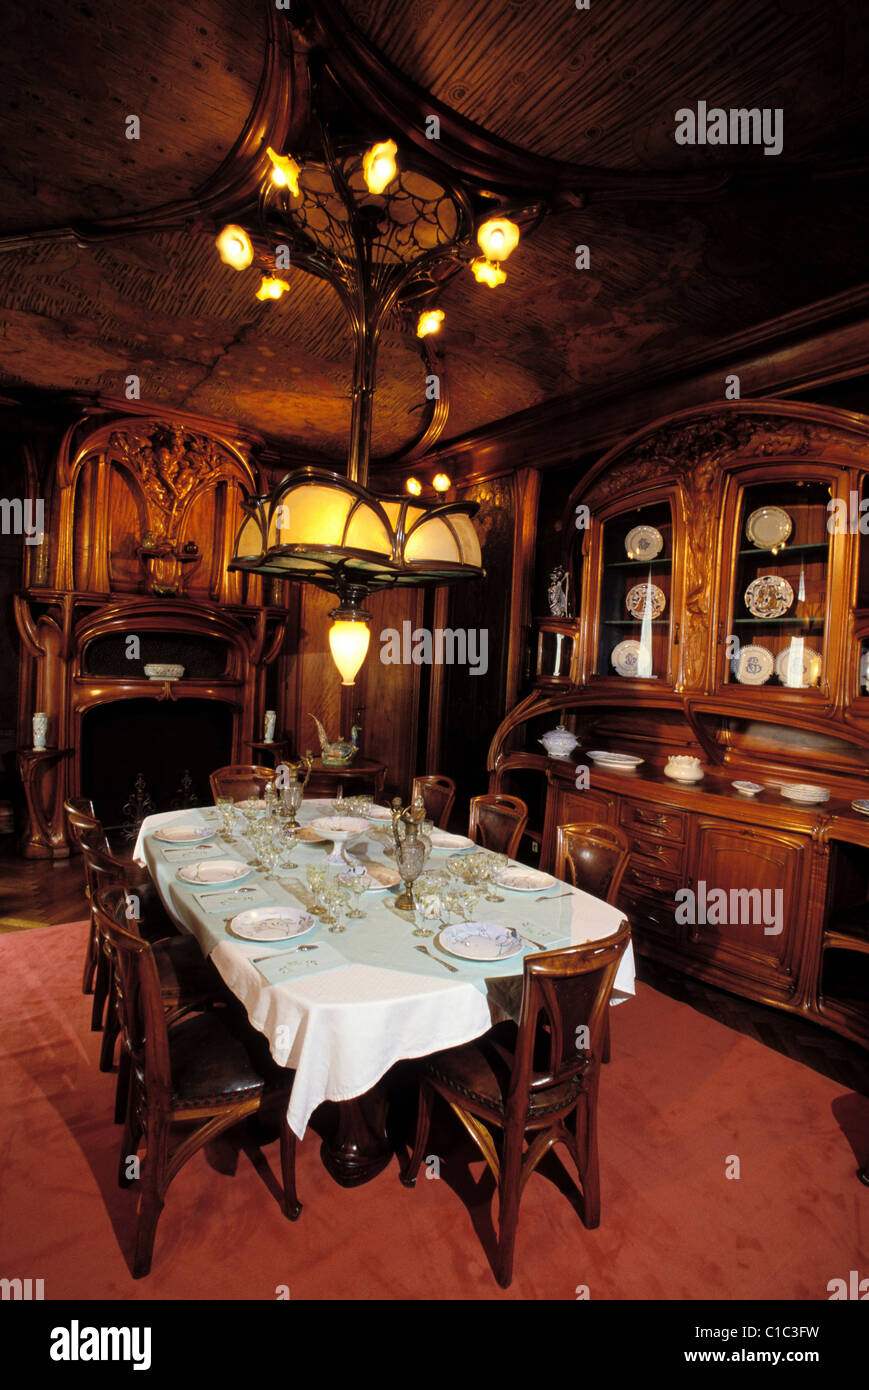 France Meurthe Et Moselle Nancy Dining Room In Art Nouveau Style By Eugene Vallin School Museum